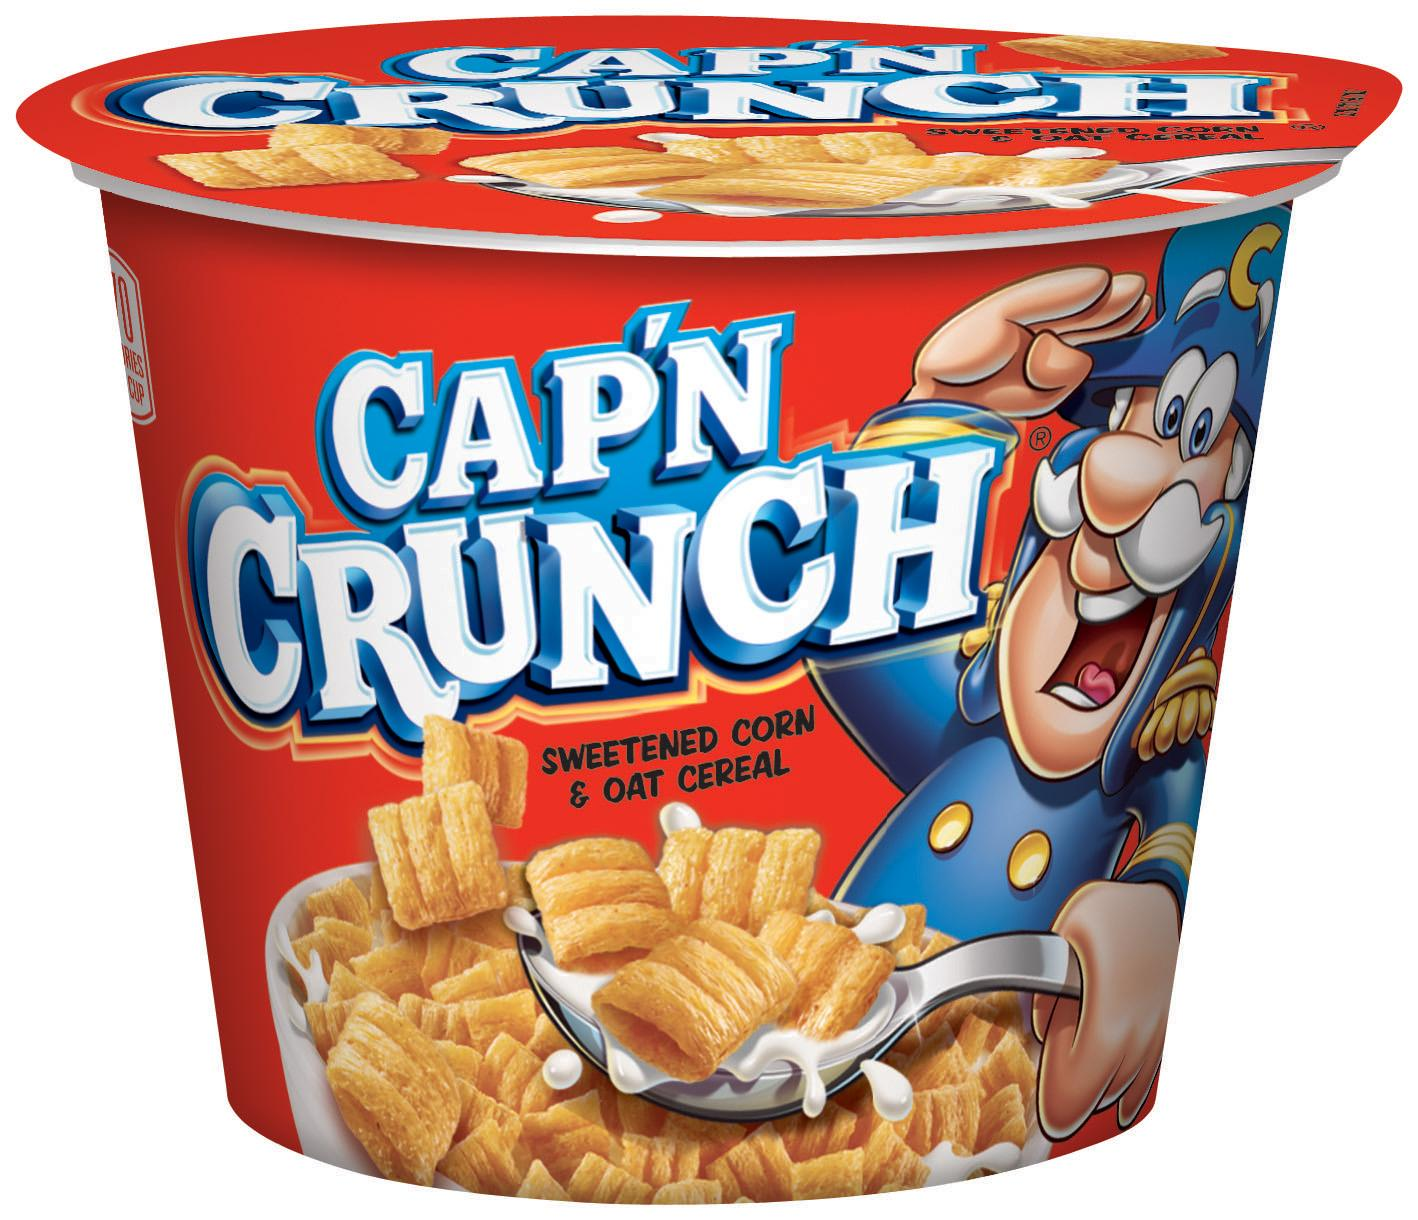 Amazon.com: Cap'n Crunch Breakfast Cereal, Original, 1